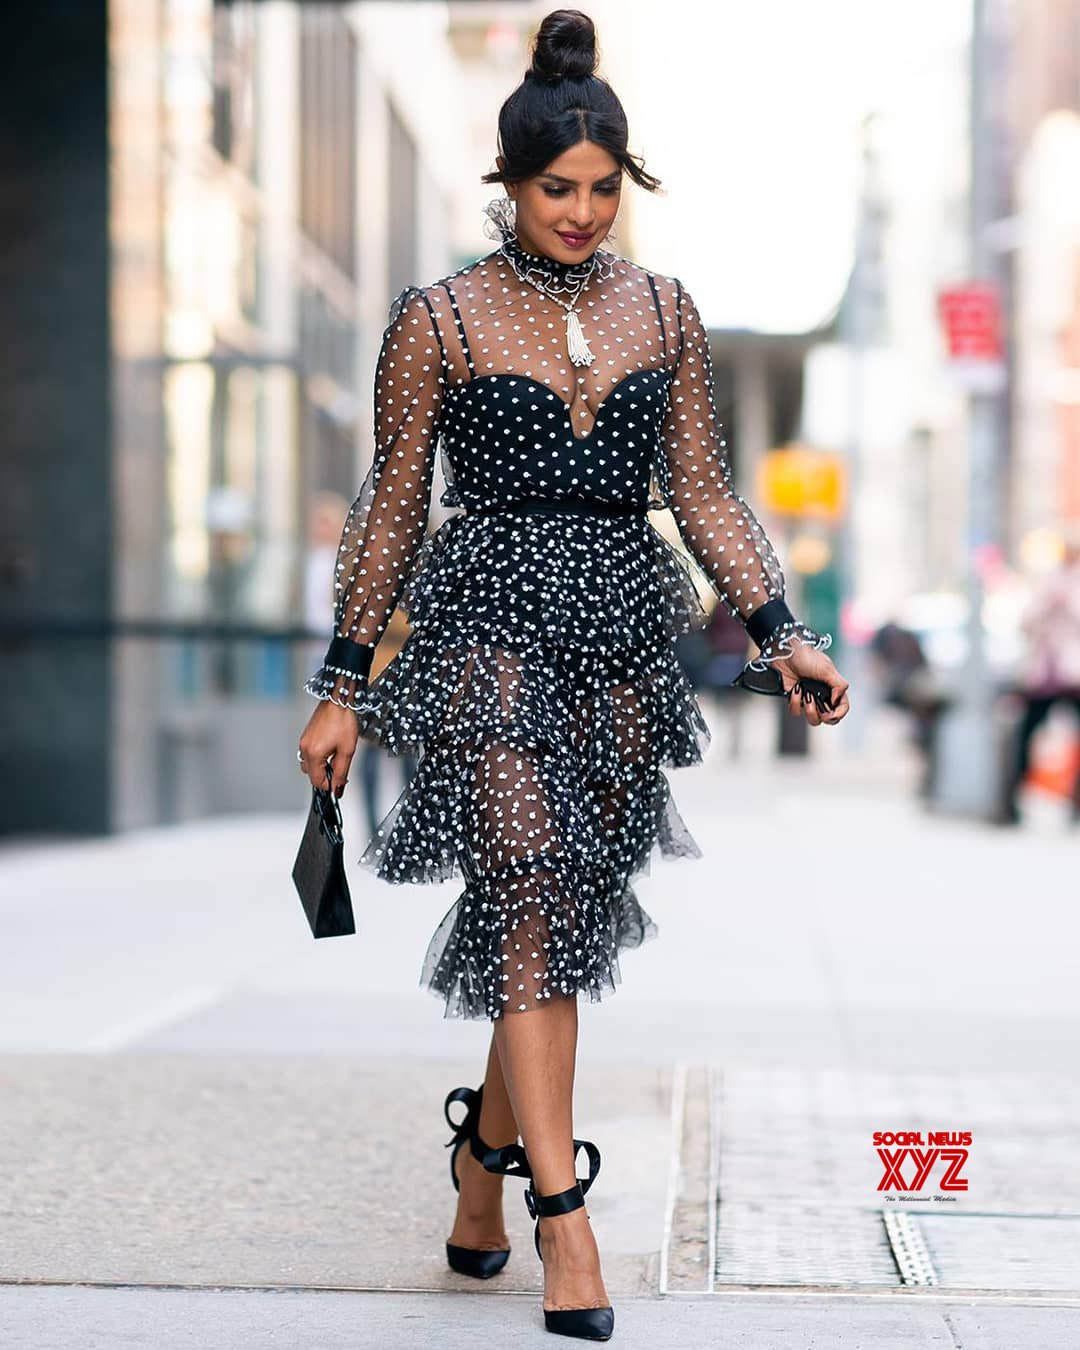 Actress Priyanka Chopra Hot Stills In A See Through Dress -8190